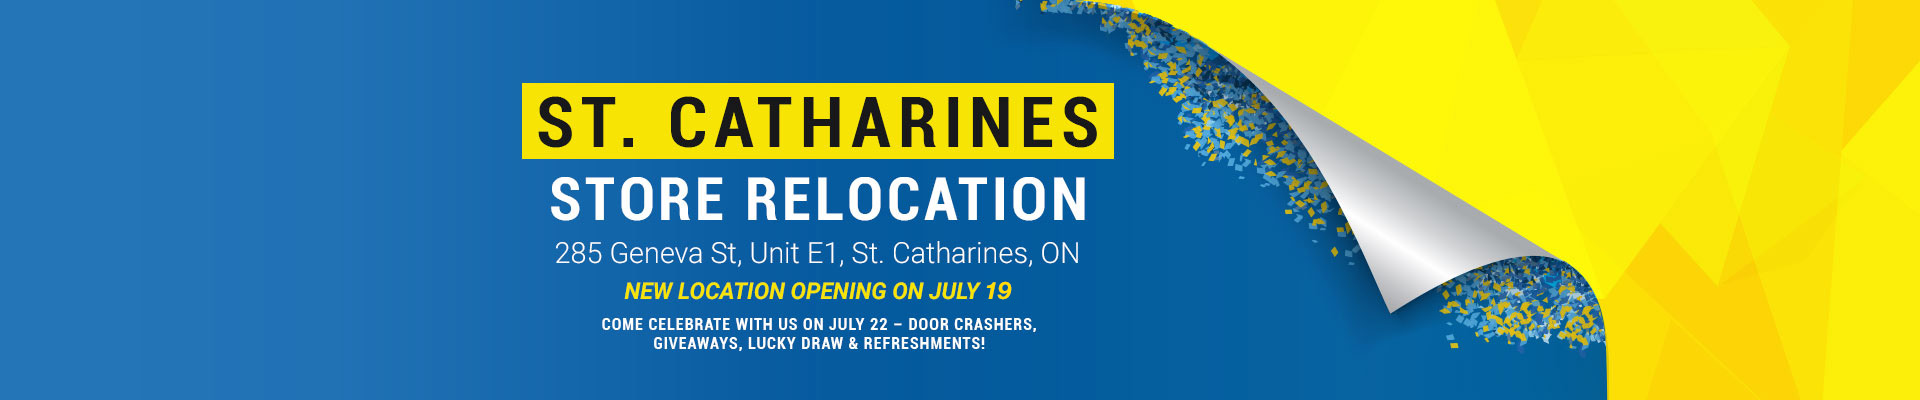 CC St. Catharines Relocation